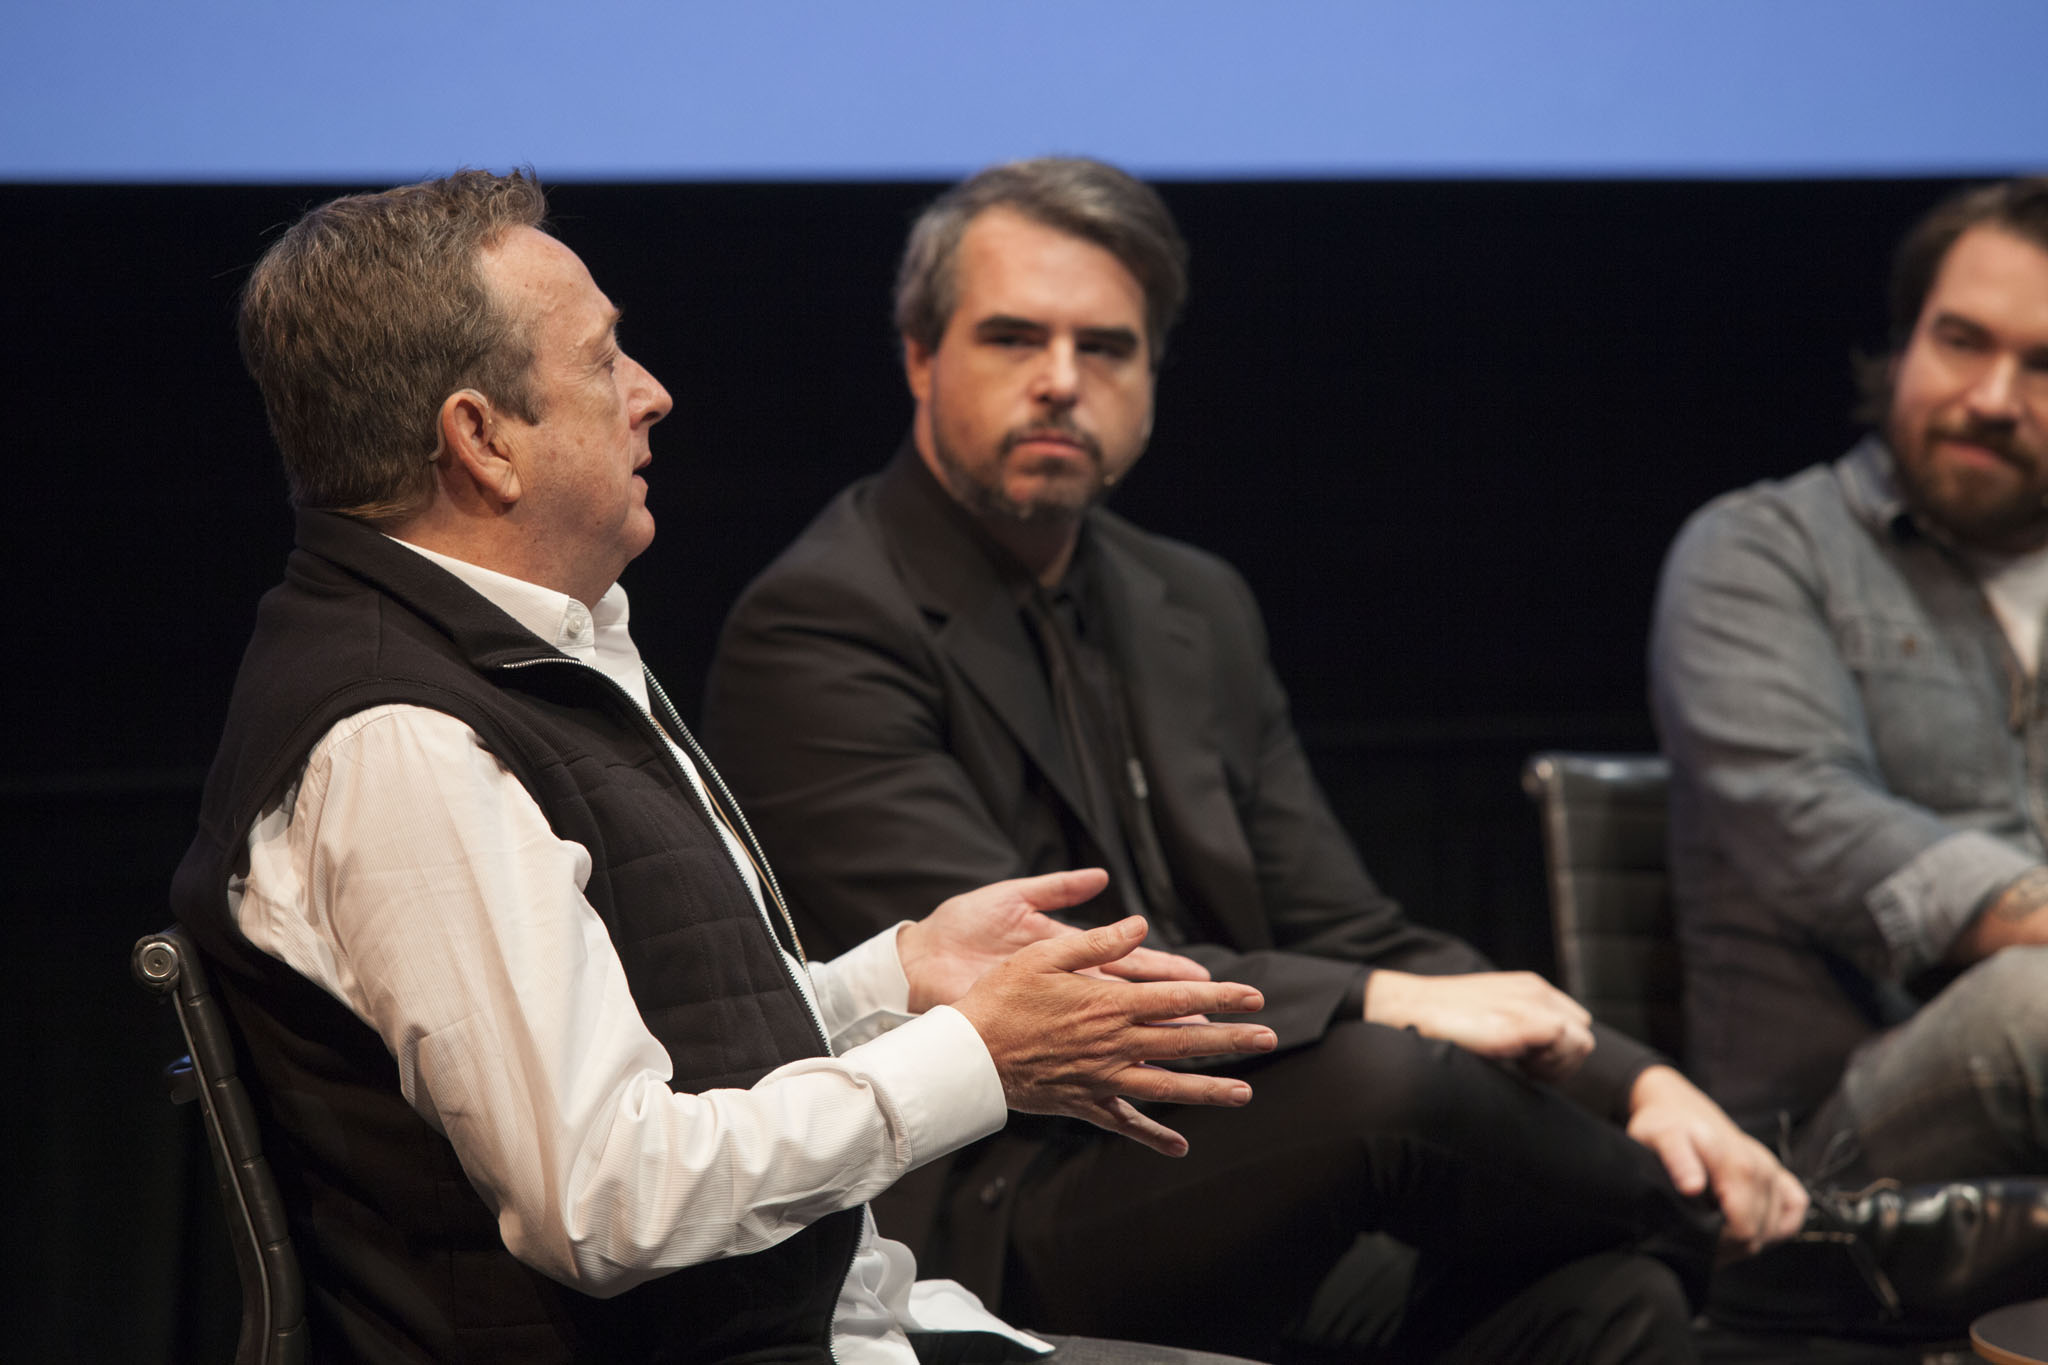 """LA Times  critic Christopher Knight,  Pitchfork  founder Ryan Schreiber, and  Buzzfeed Books  editor Isaac Fitzgerald discuss """"Credibilty, Criticism, and Collusion."""" Not pictured: Rhizome's Orit Gat. Photo: Walker Art Center"""